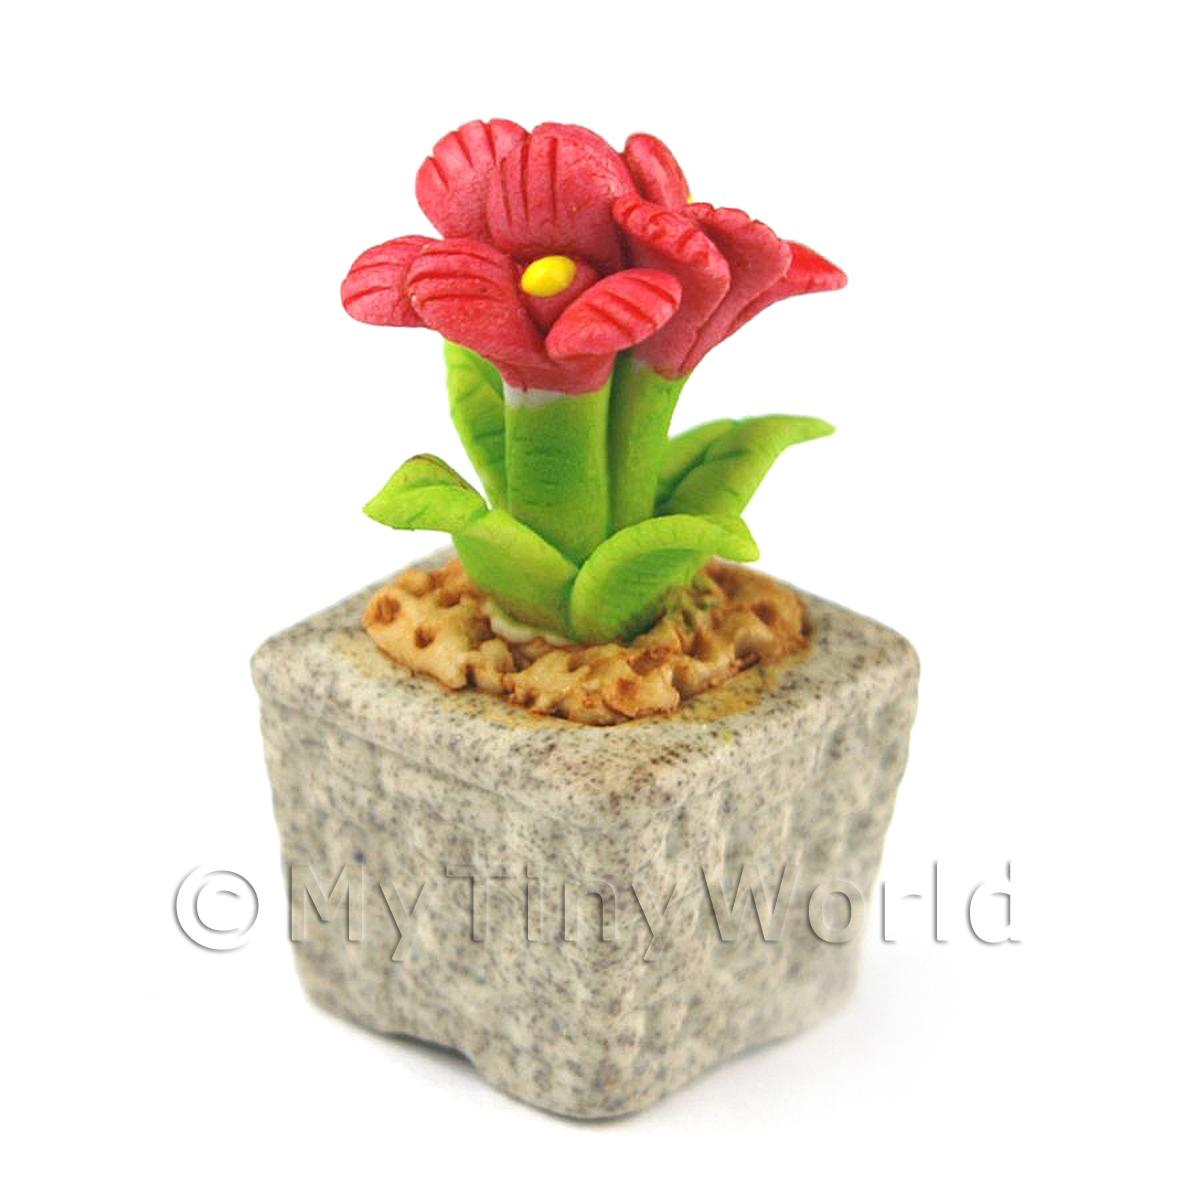 Miniature Handmade Red Coloured Ceramic Flower (CFR15)